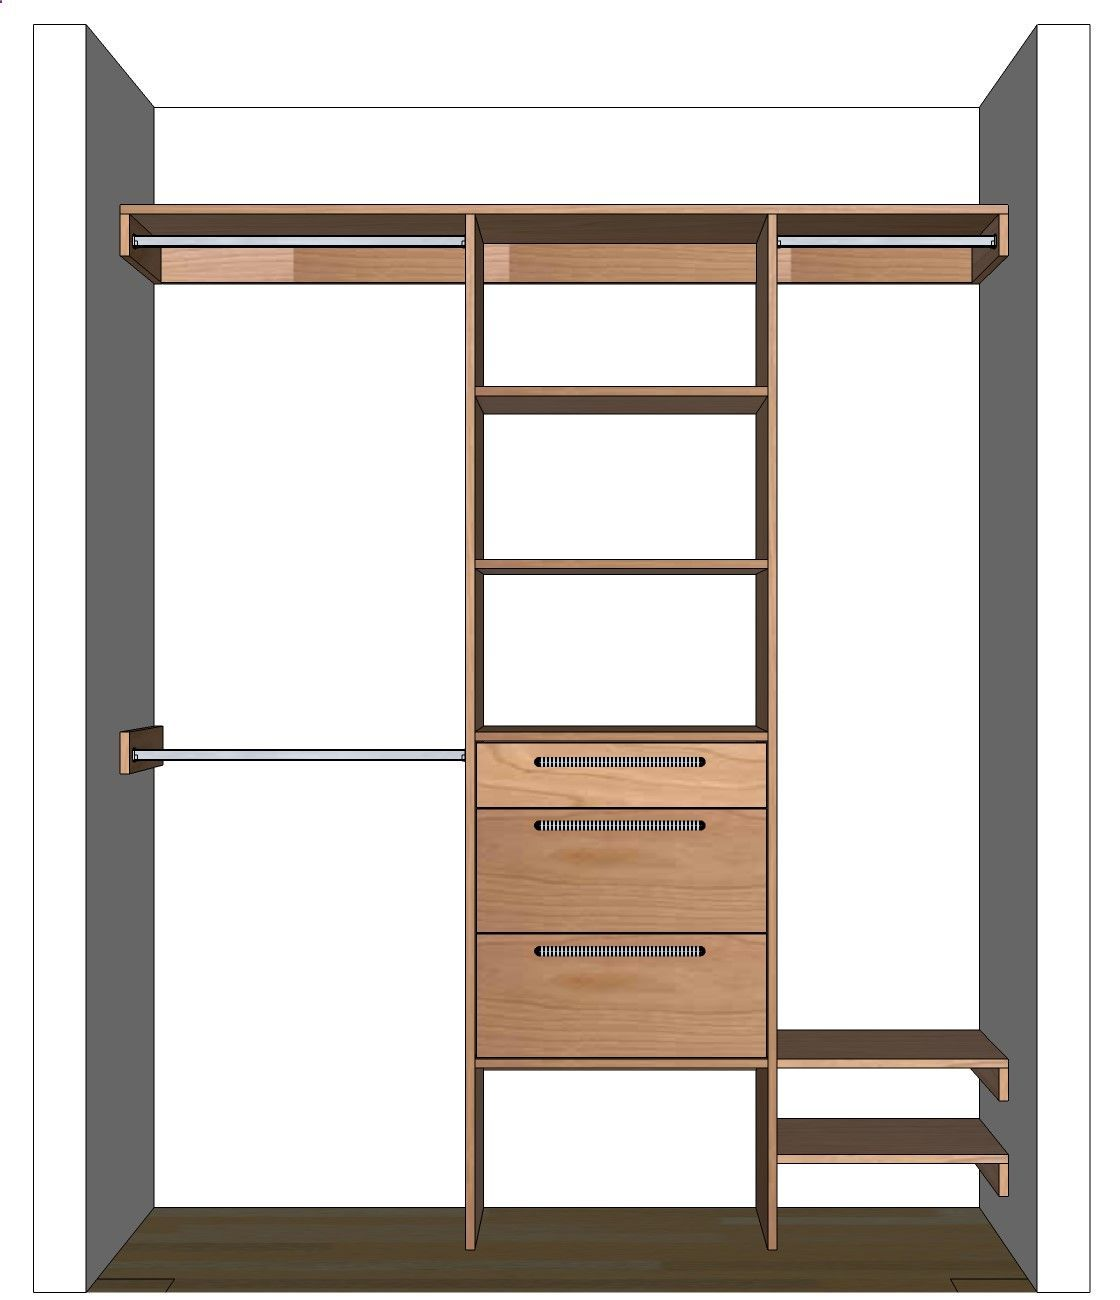 Free Woodworking Plans To Build A Custom Closet Organizer For Wide Reach In Closets Can Be Customized Suit Your Needs And Budget